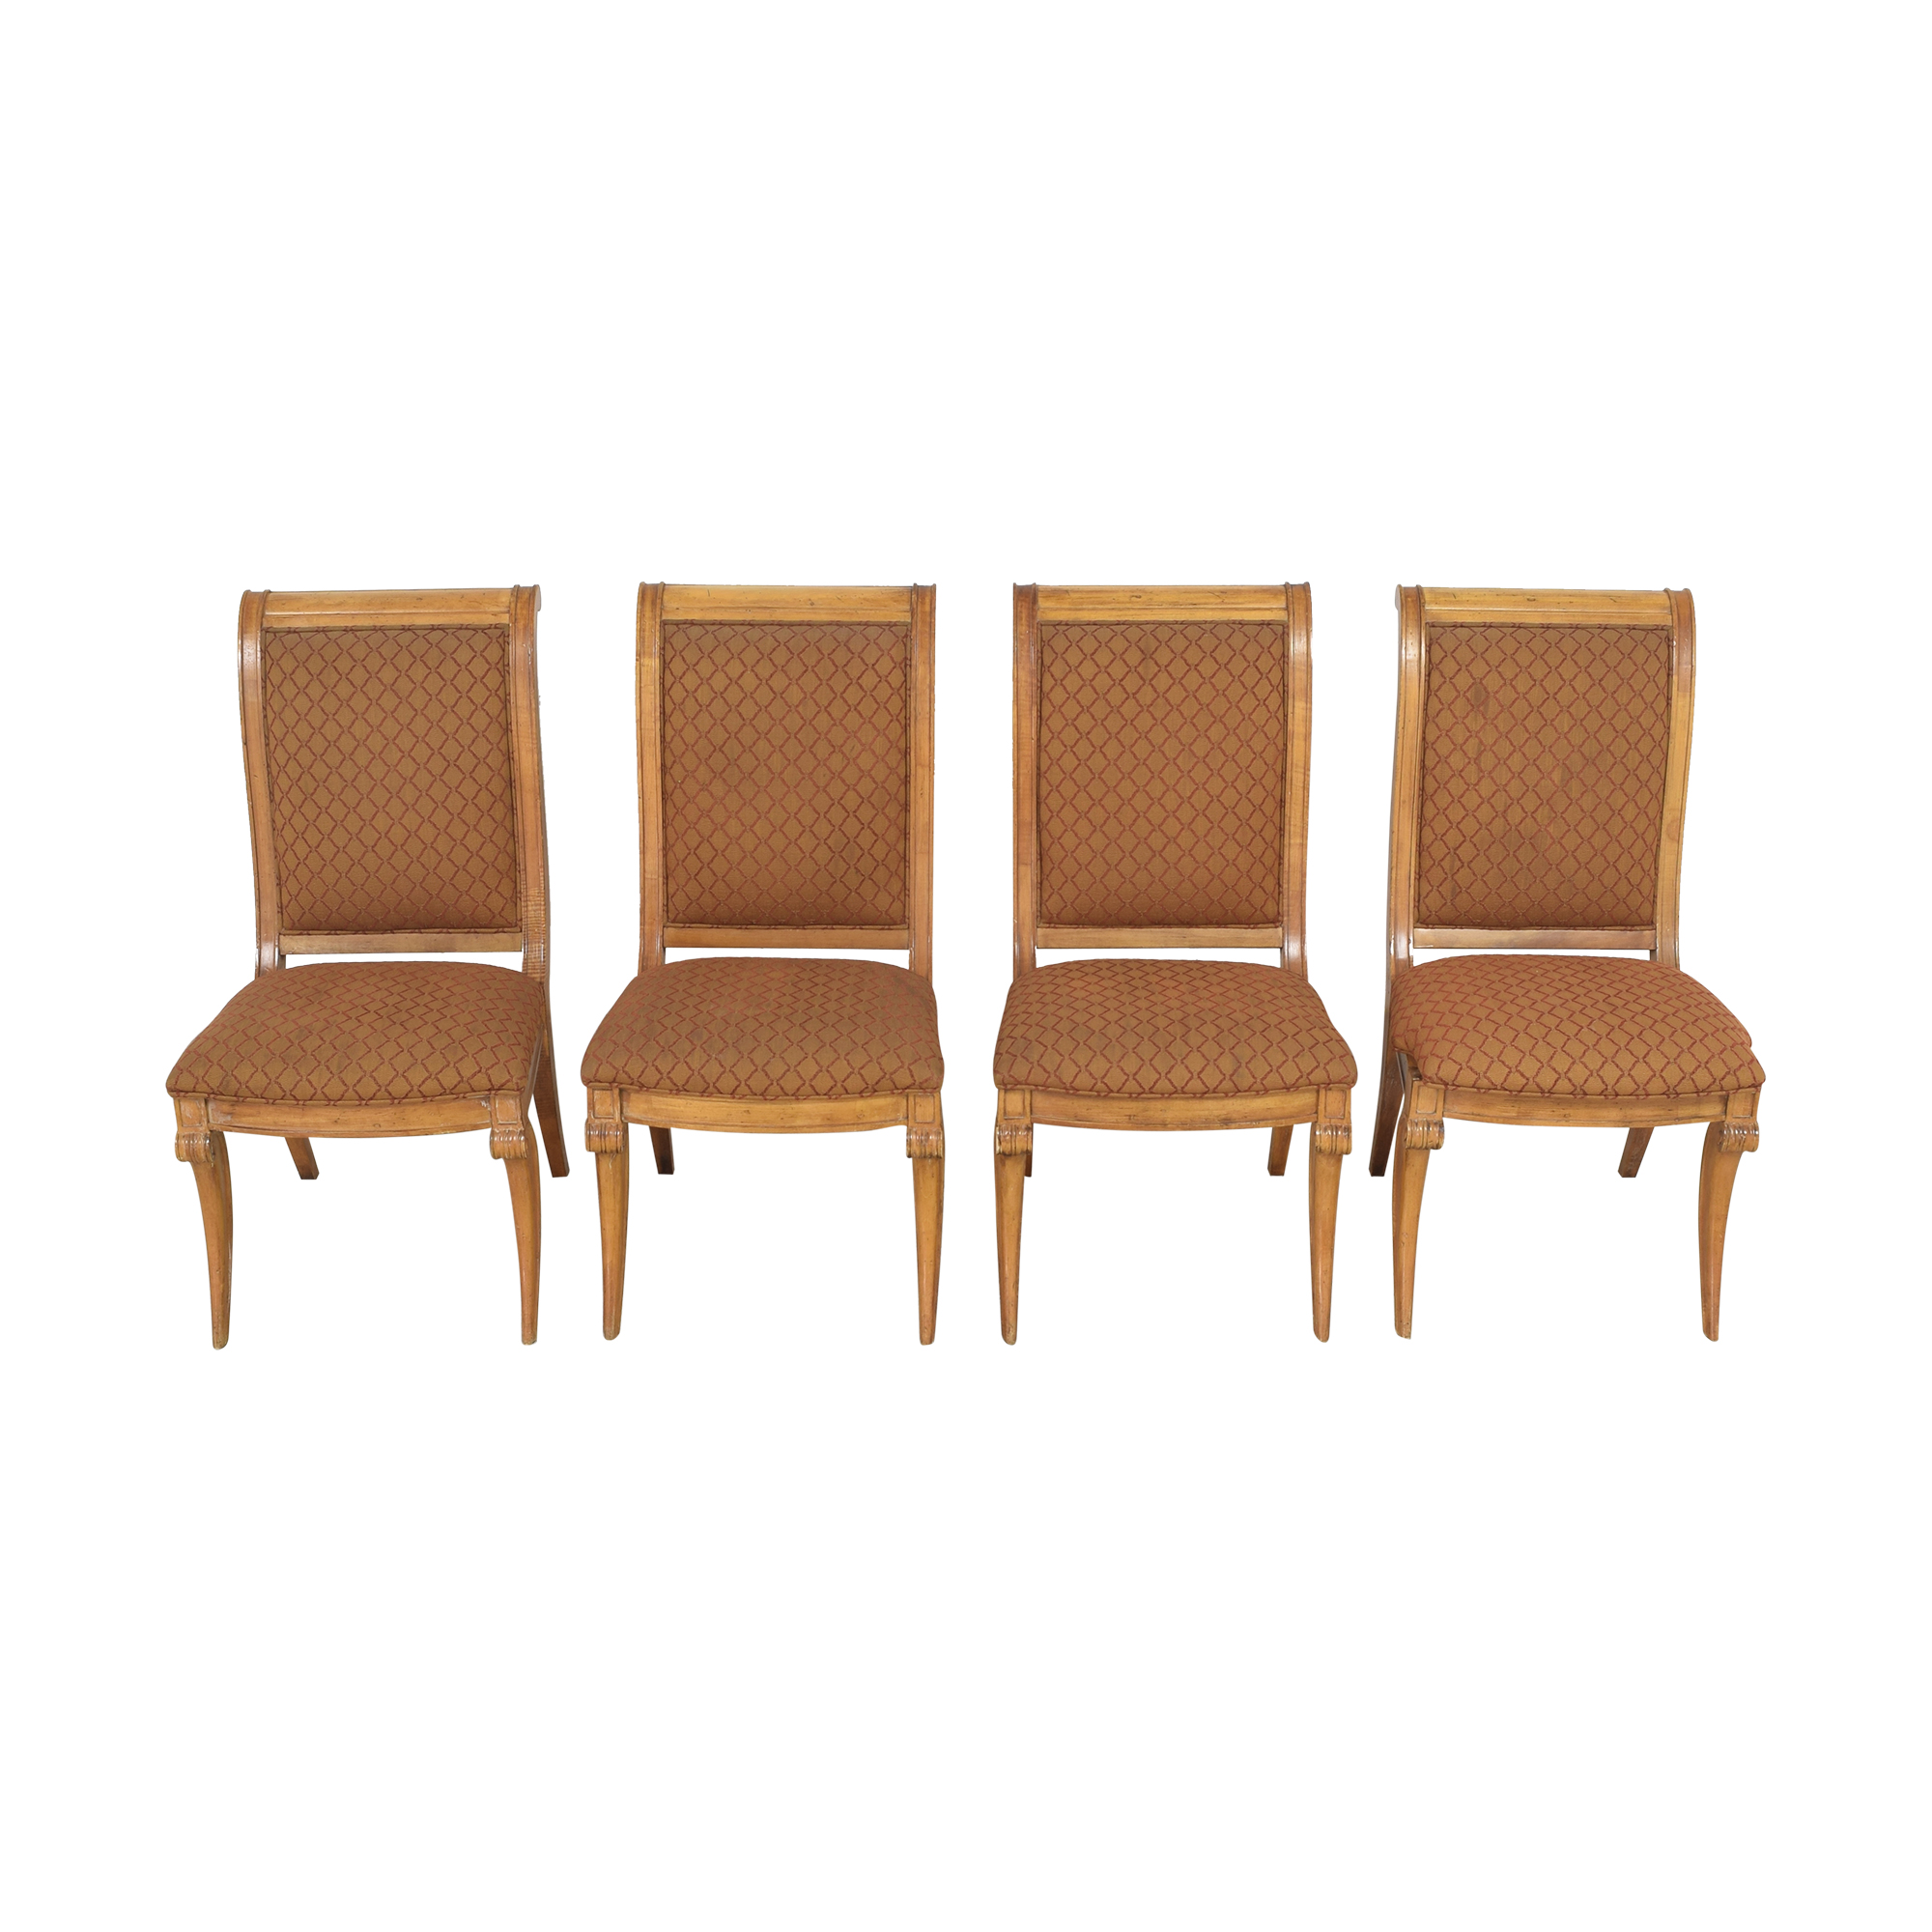 Century Furniture Upholstered Dining Chairs sale